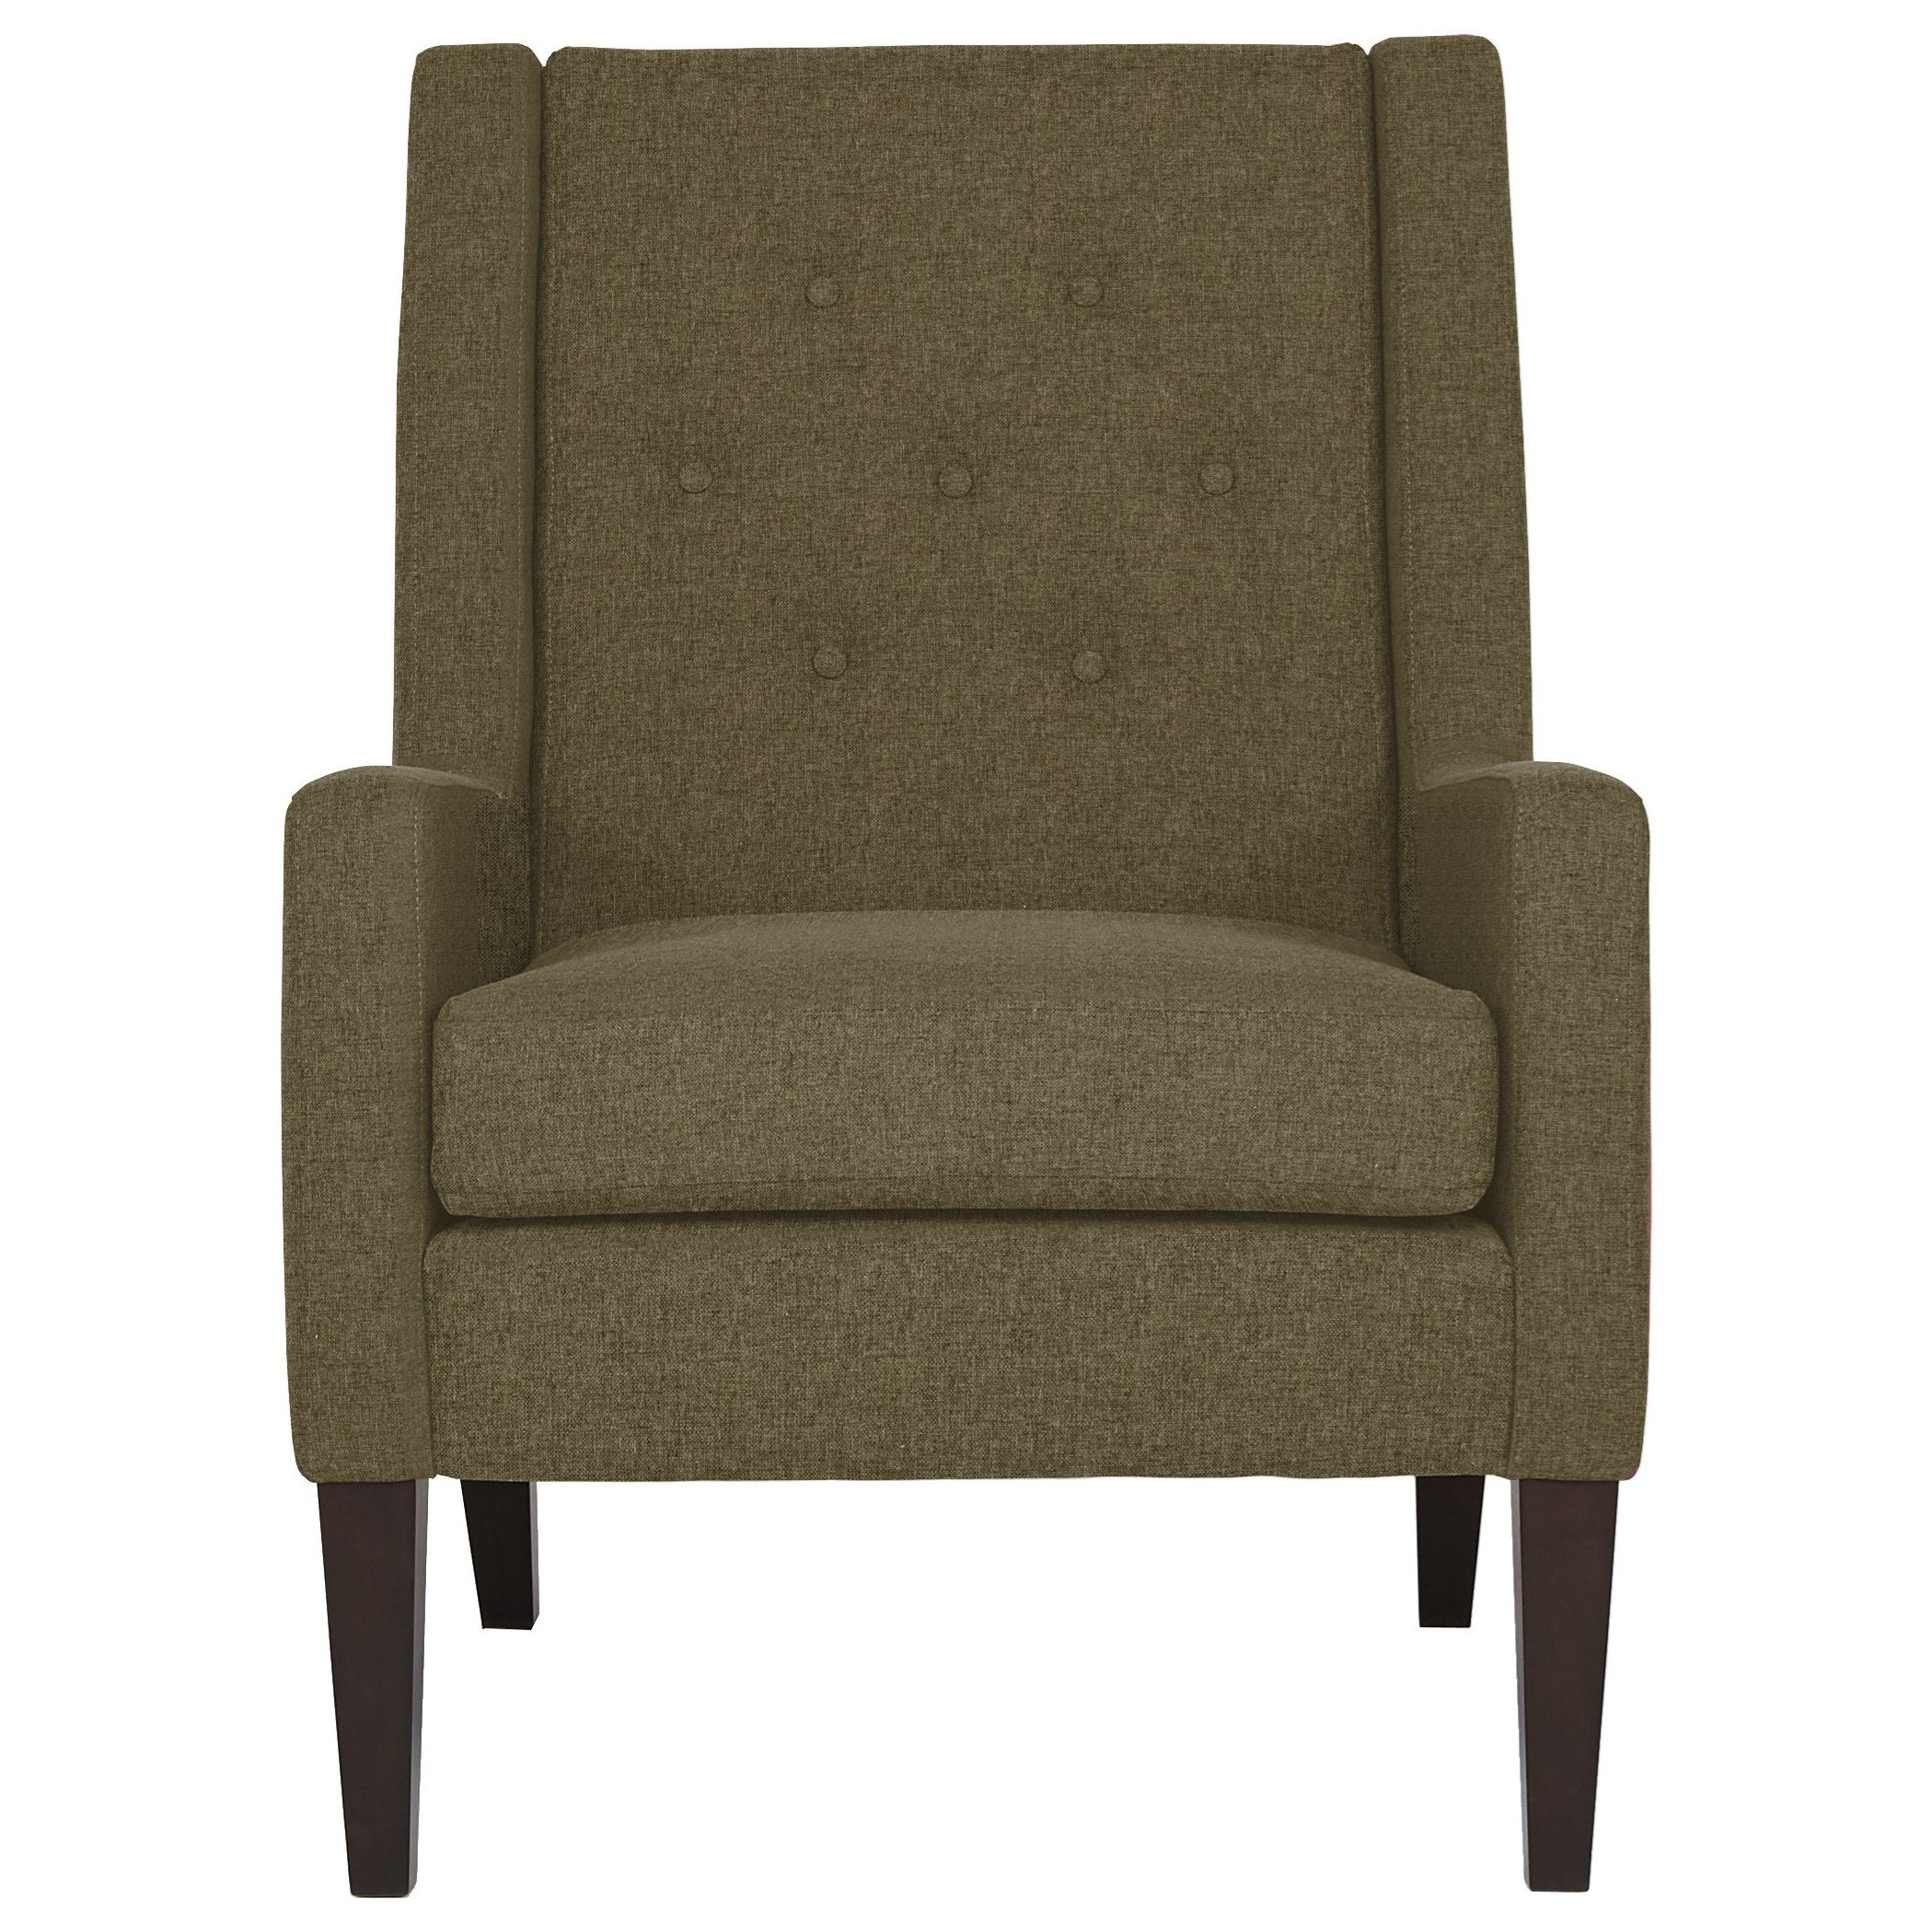 Accent Chairs Chair by Best Home Furnishings at Factory Direct Furniture